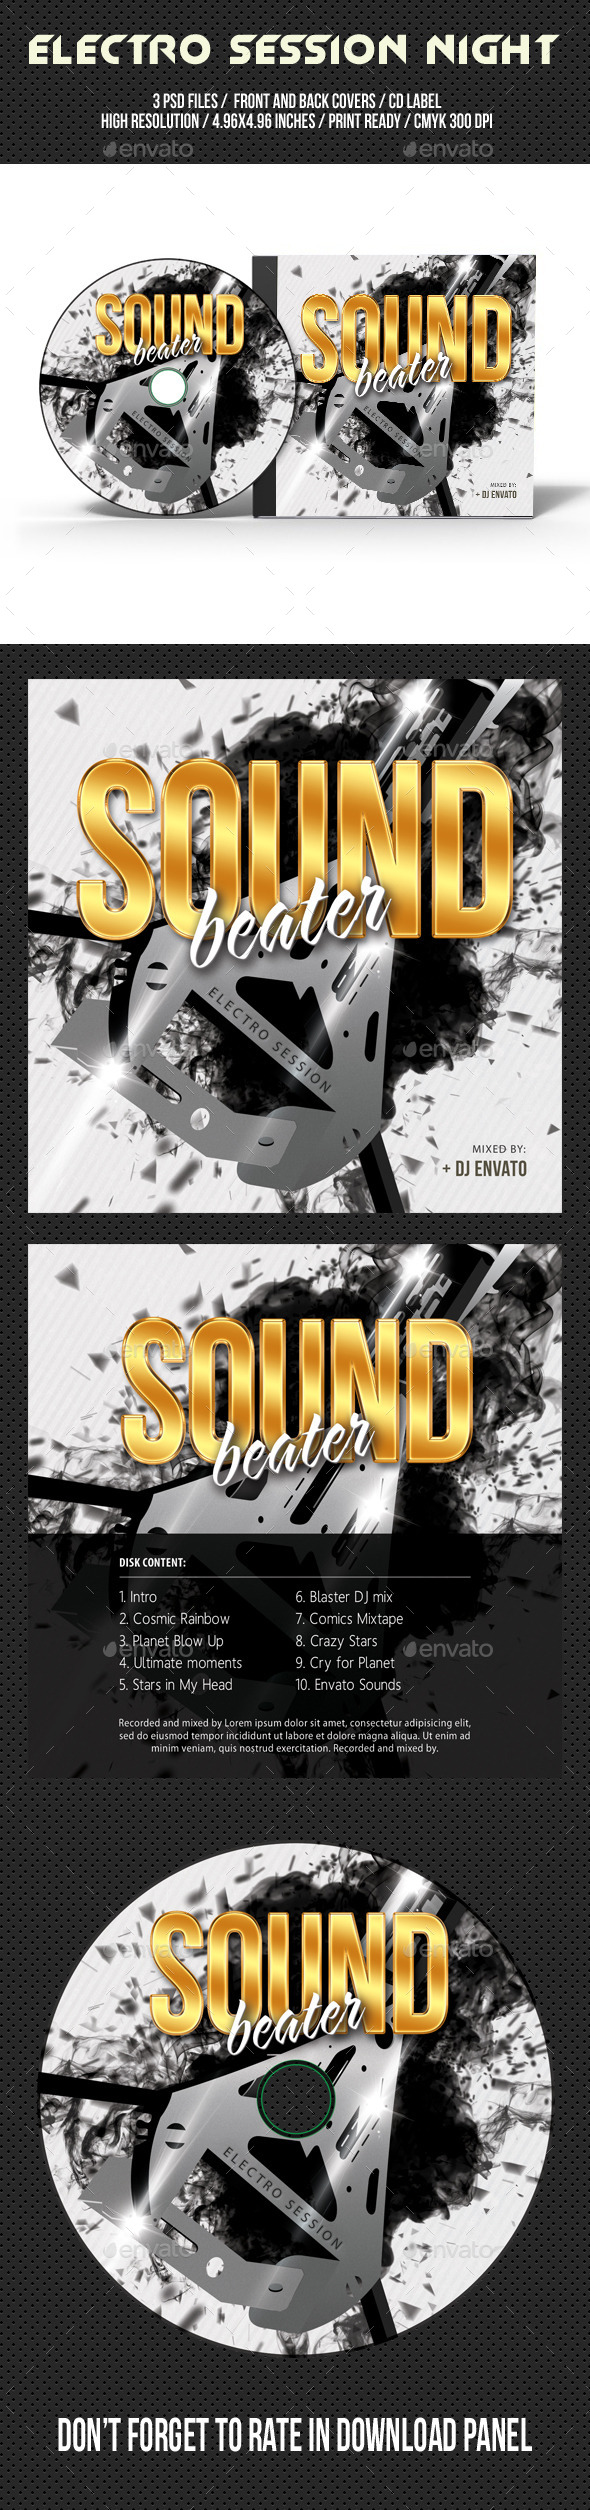 GraphicRiver Electro Session Night Party CD Cover V03 10368497